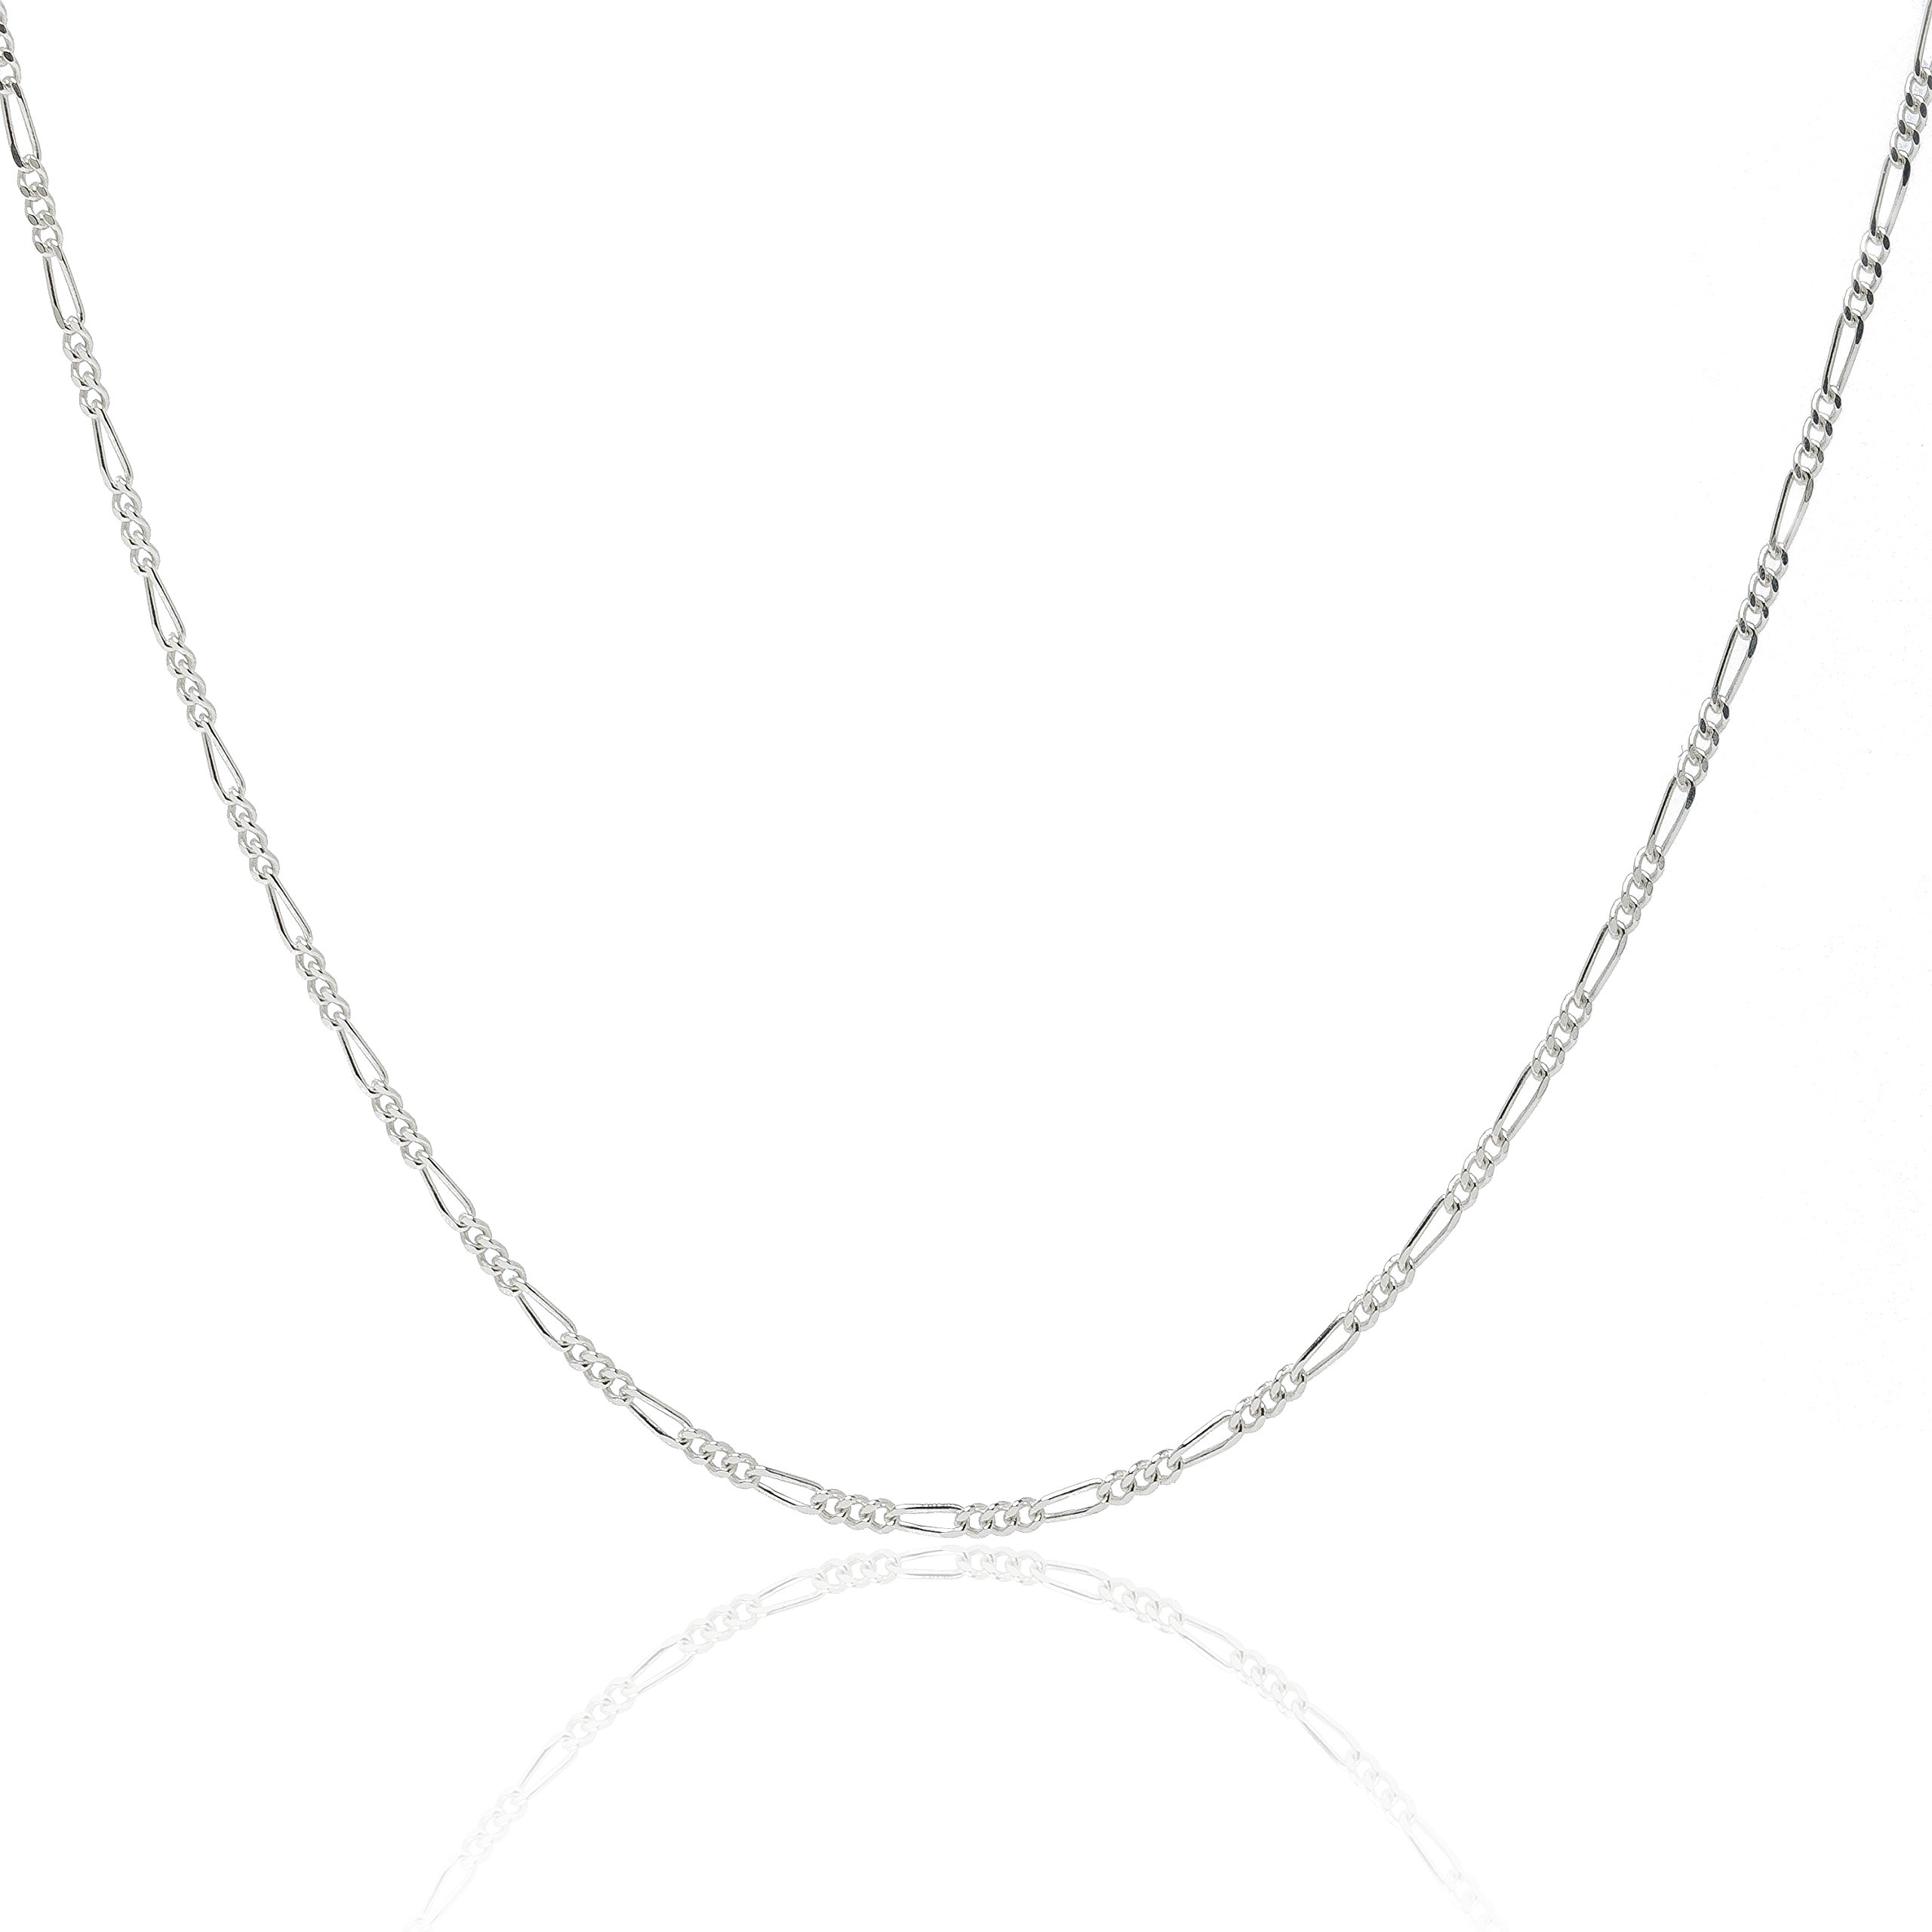 925 Sterling Silver 1.8MM Figaro Chain - Italian Necklace For Women - Lobster Claw Clasp 24 Inch by Designer Sterling Silver (Image #9)